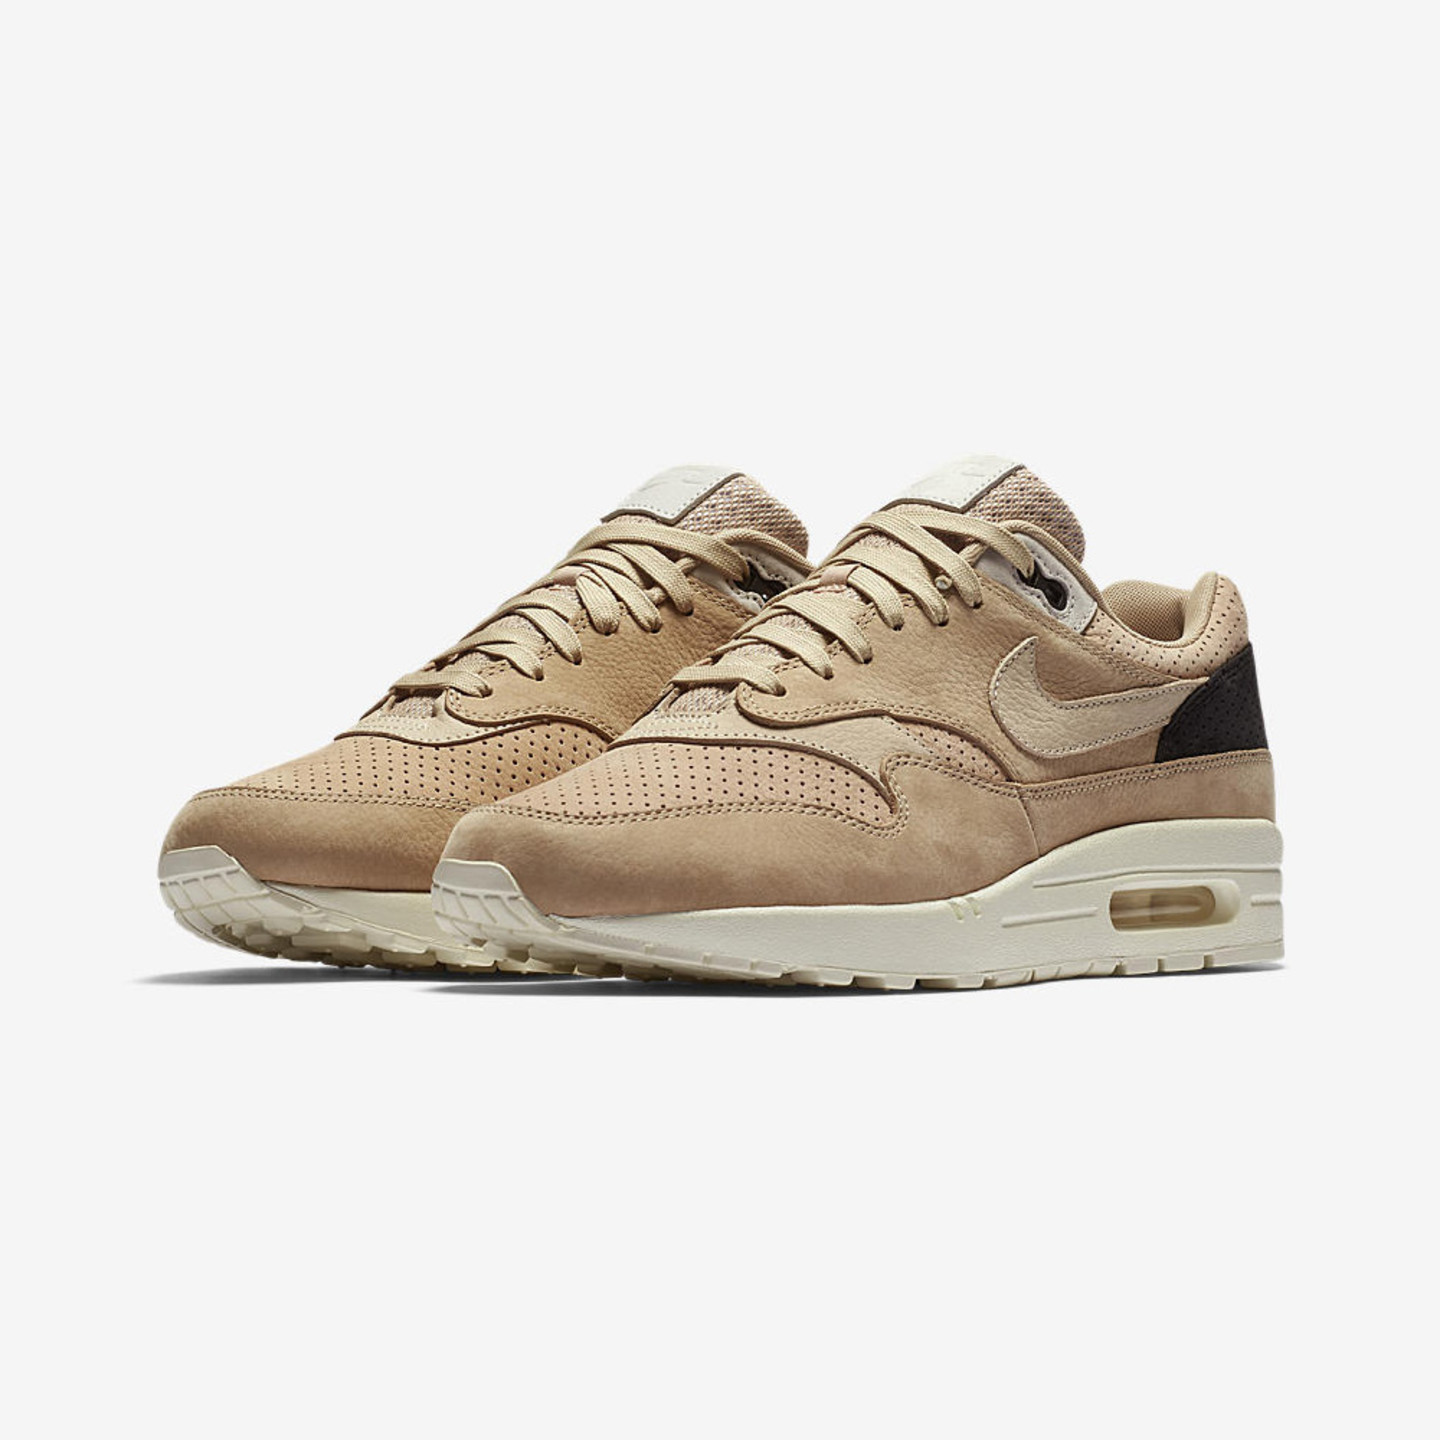 Nike Air Max 1 Pinnacle Mushroom / Oatmeal 859554-200